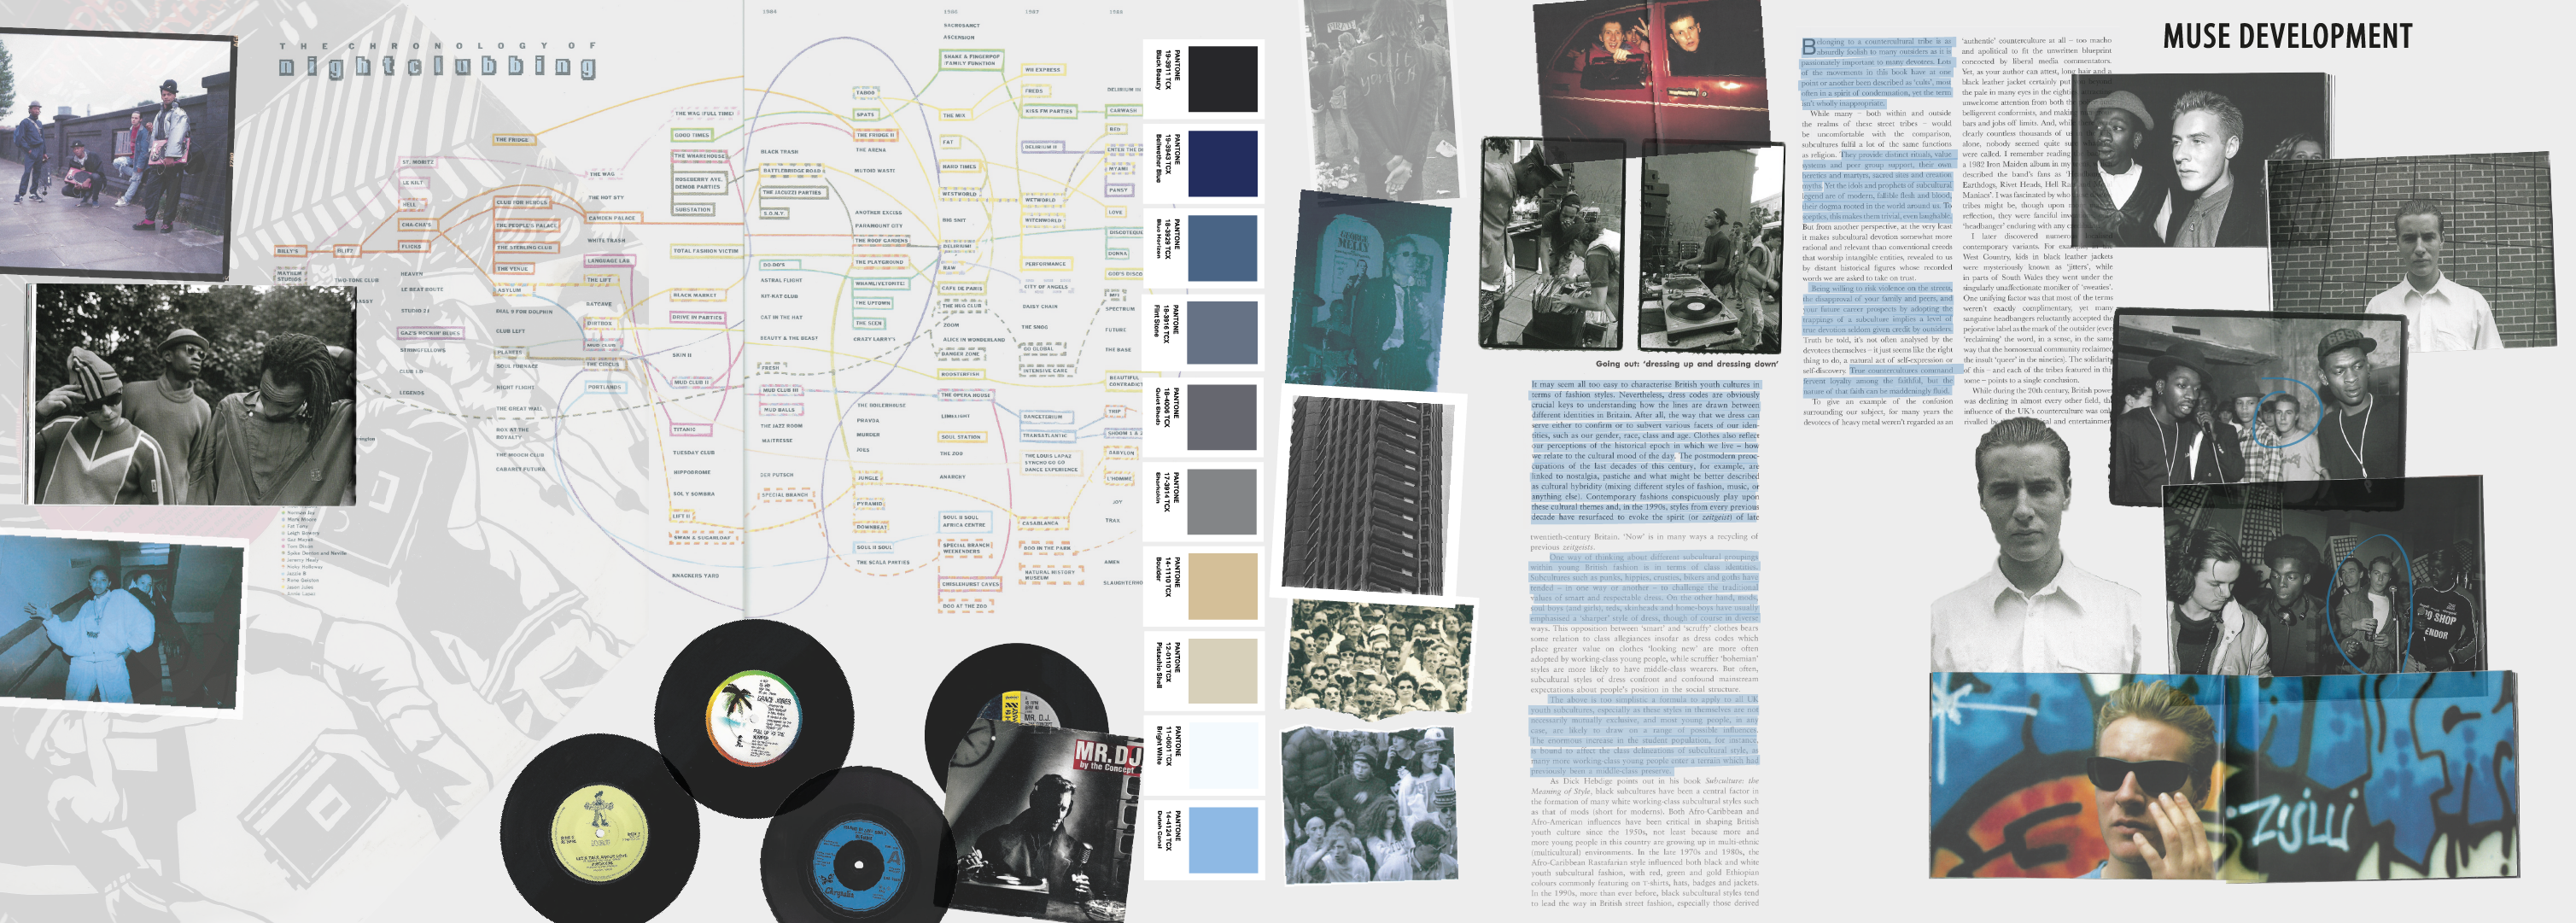 Portfolio page with research into clubbing, photographs, music, colour swatches and historical background